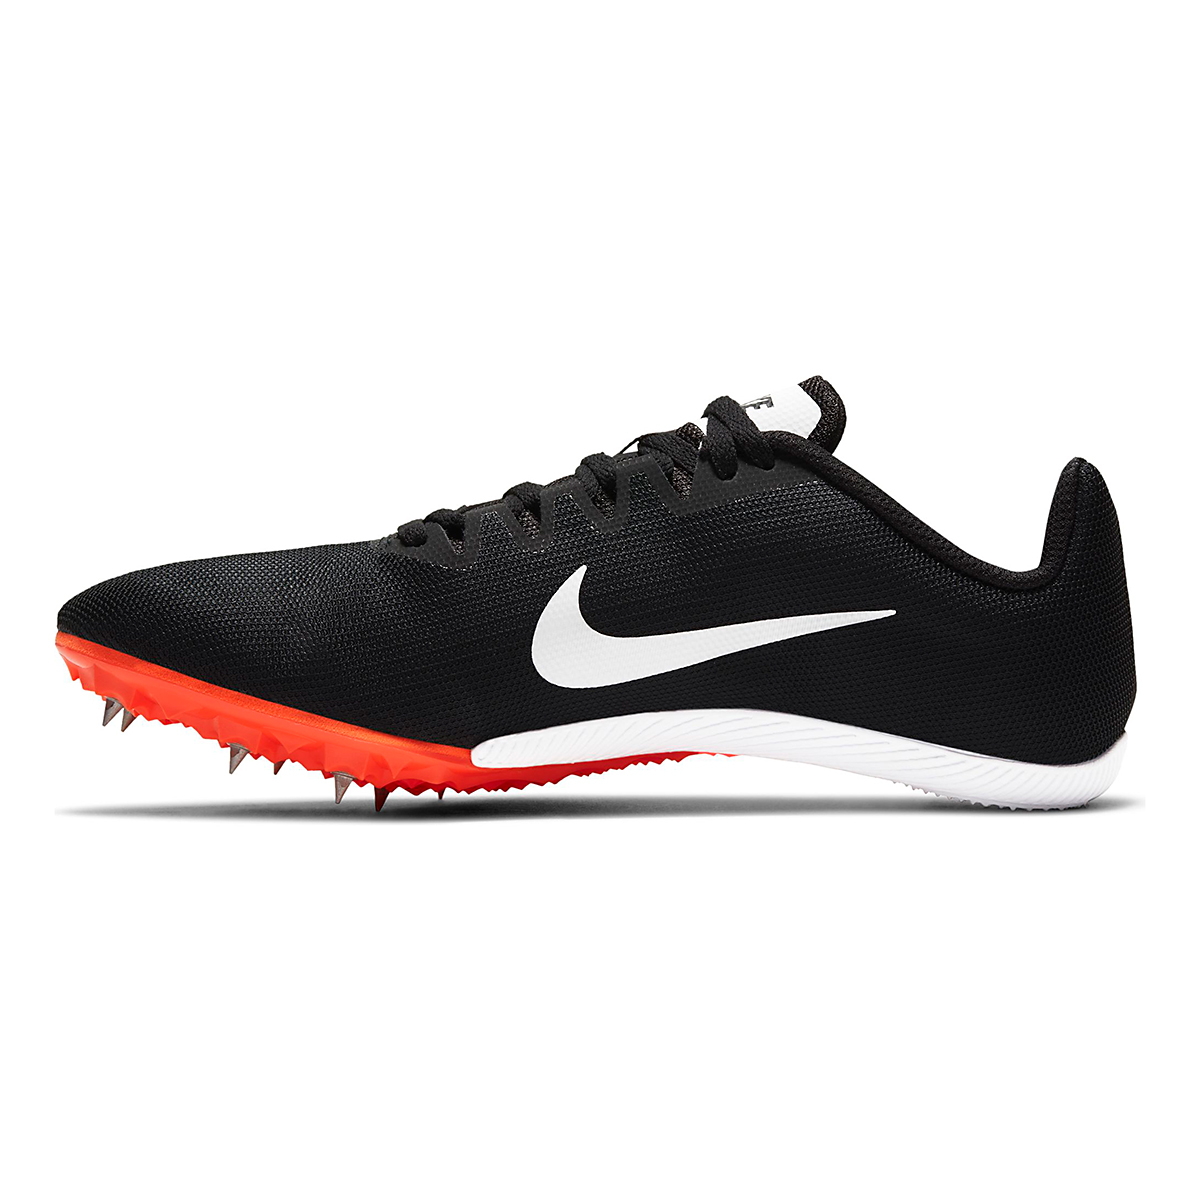 Nike Zoom Rival M 9 Track Spikes - Color: Black/White/Iron Grey/Hyper Crimson - Size: M4/W5.5 - Width: Regular, Black/White/Iron Grey/Hyper Crimson, large, image 2